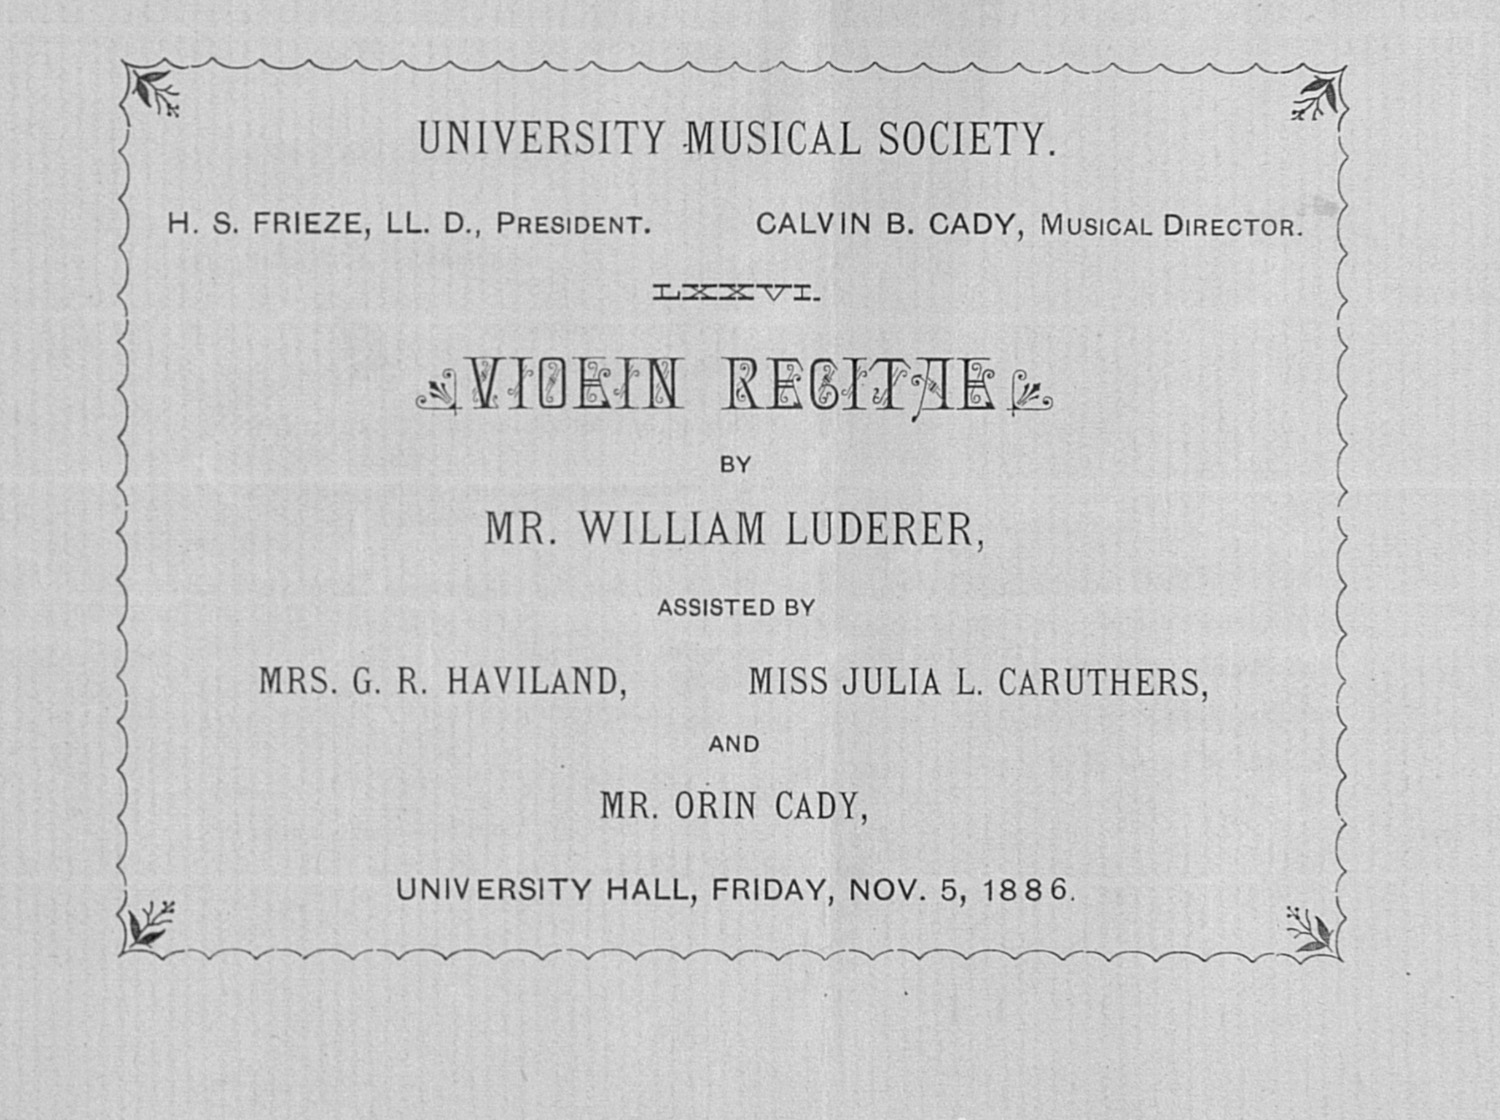 UMS Concert Program, Nov. 5, 1886: Violin Recital -- Mr. William Luderer image